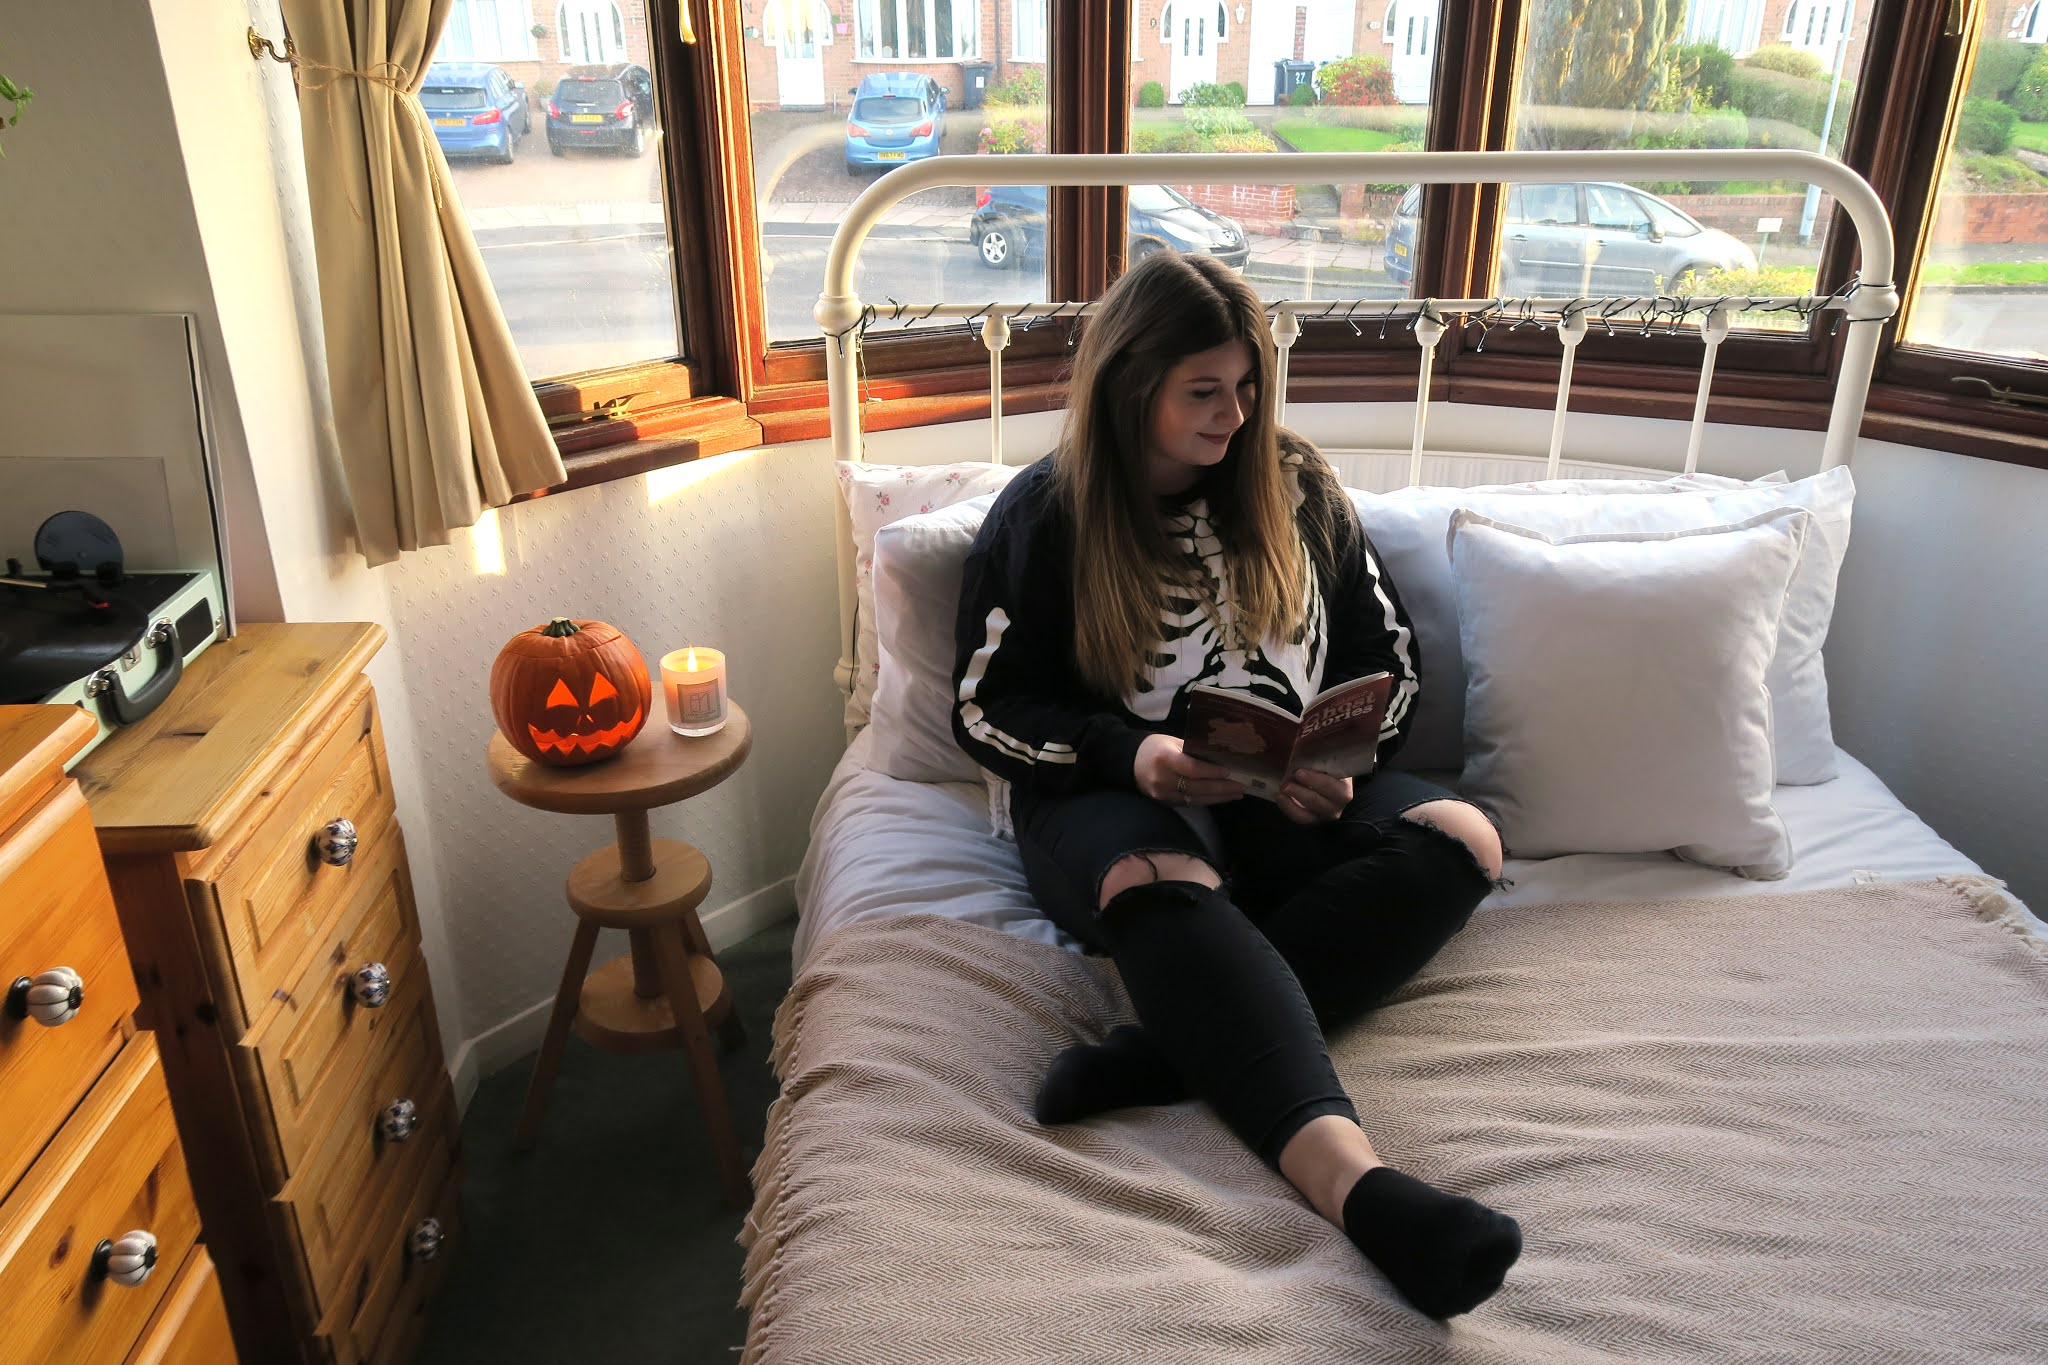 Grace is sitting on her bed reading a book titled 'ghost stories'. She is wearing a black jumper with a skeleton on it and beside her is a carved pumpkin.